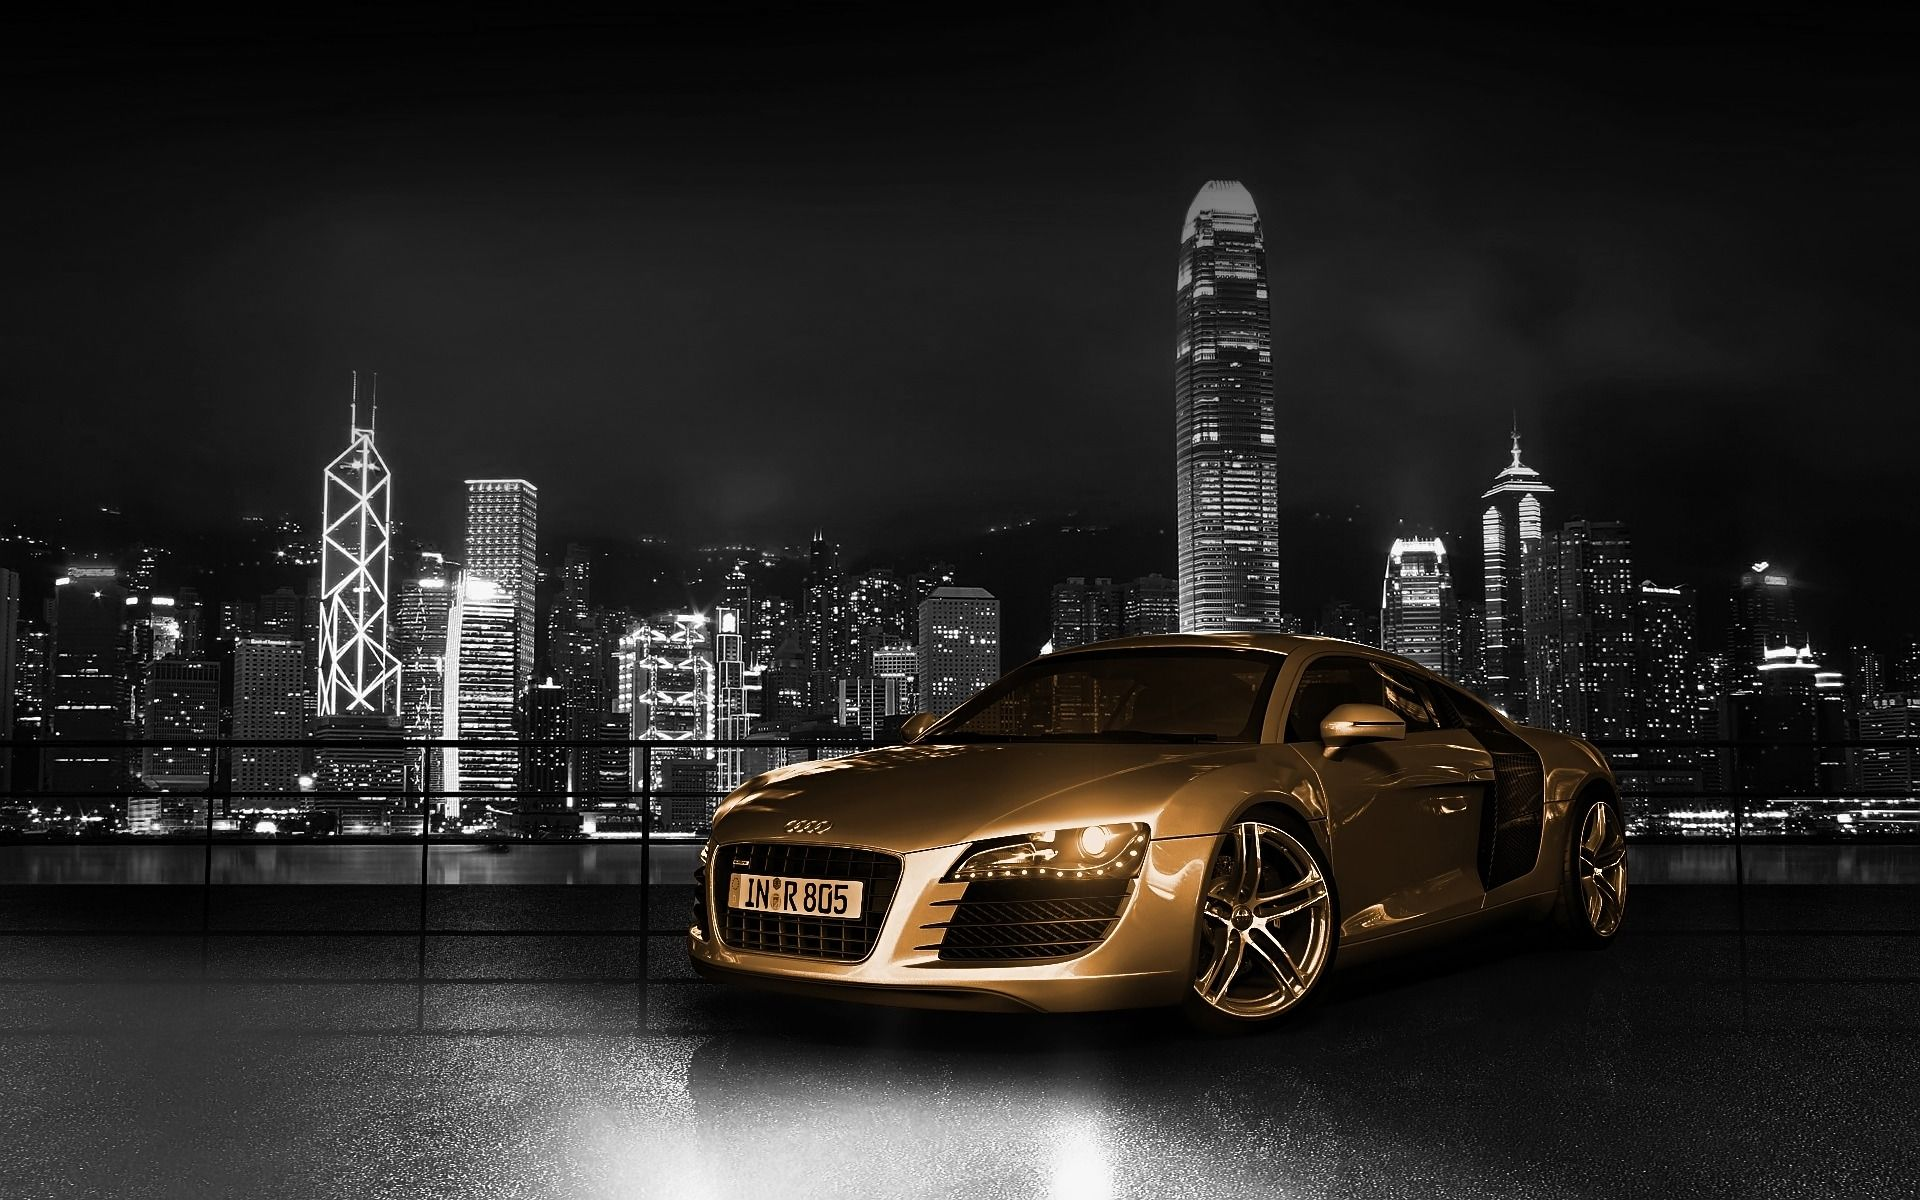 Audi R8 Desktop Wallpaper 04